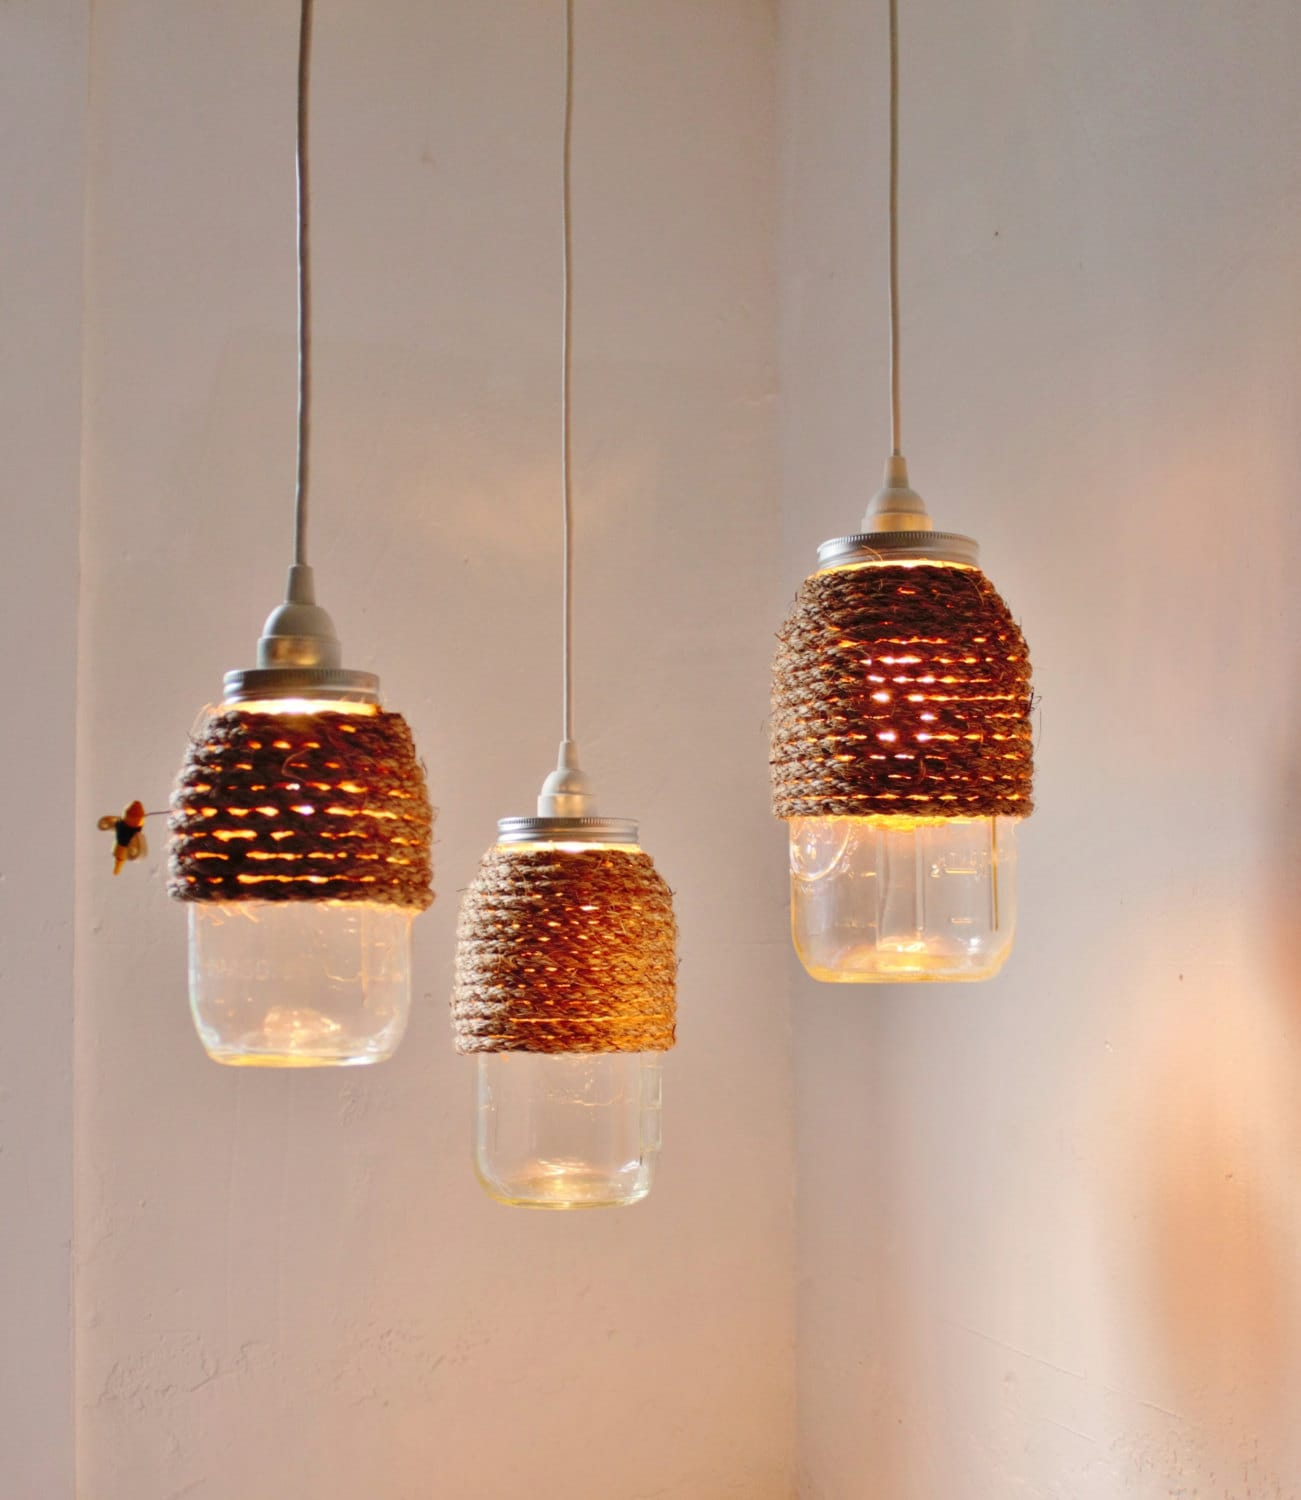 The Hive Mason Jar Pendant Lights Set Of 3 Hanging Lighting